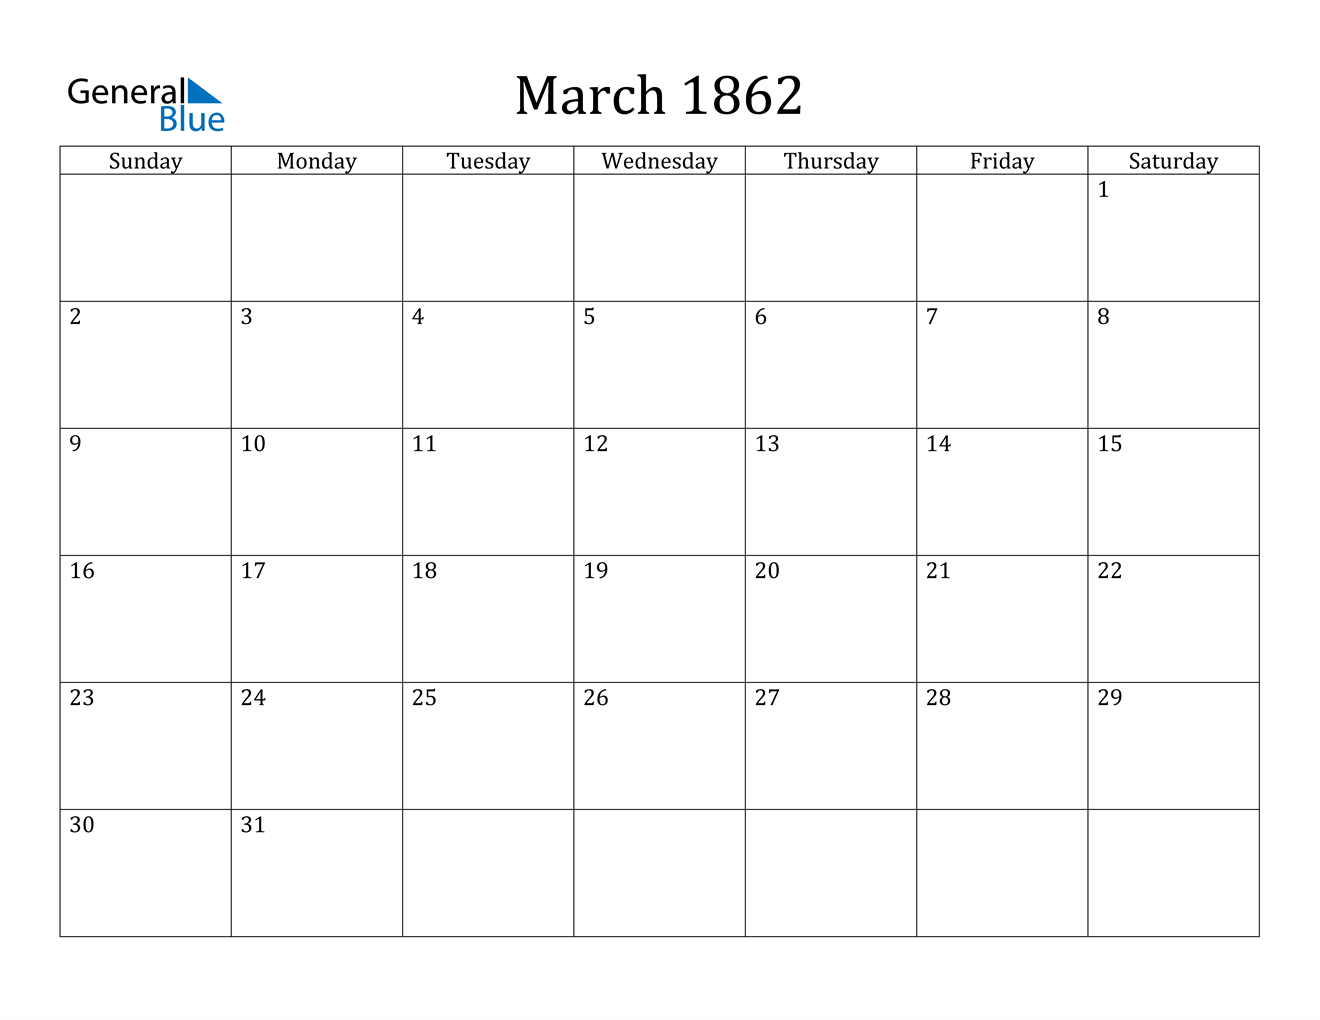 Image of March 1862 Calendar